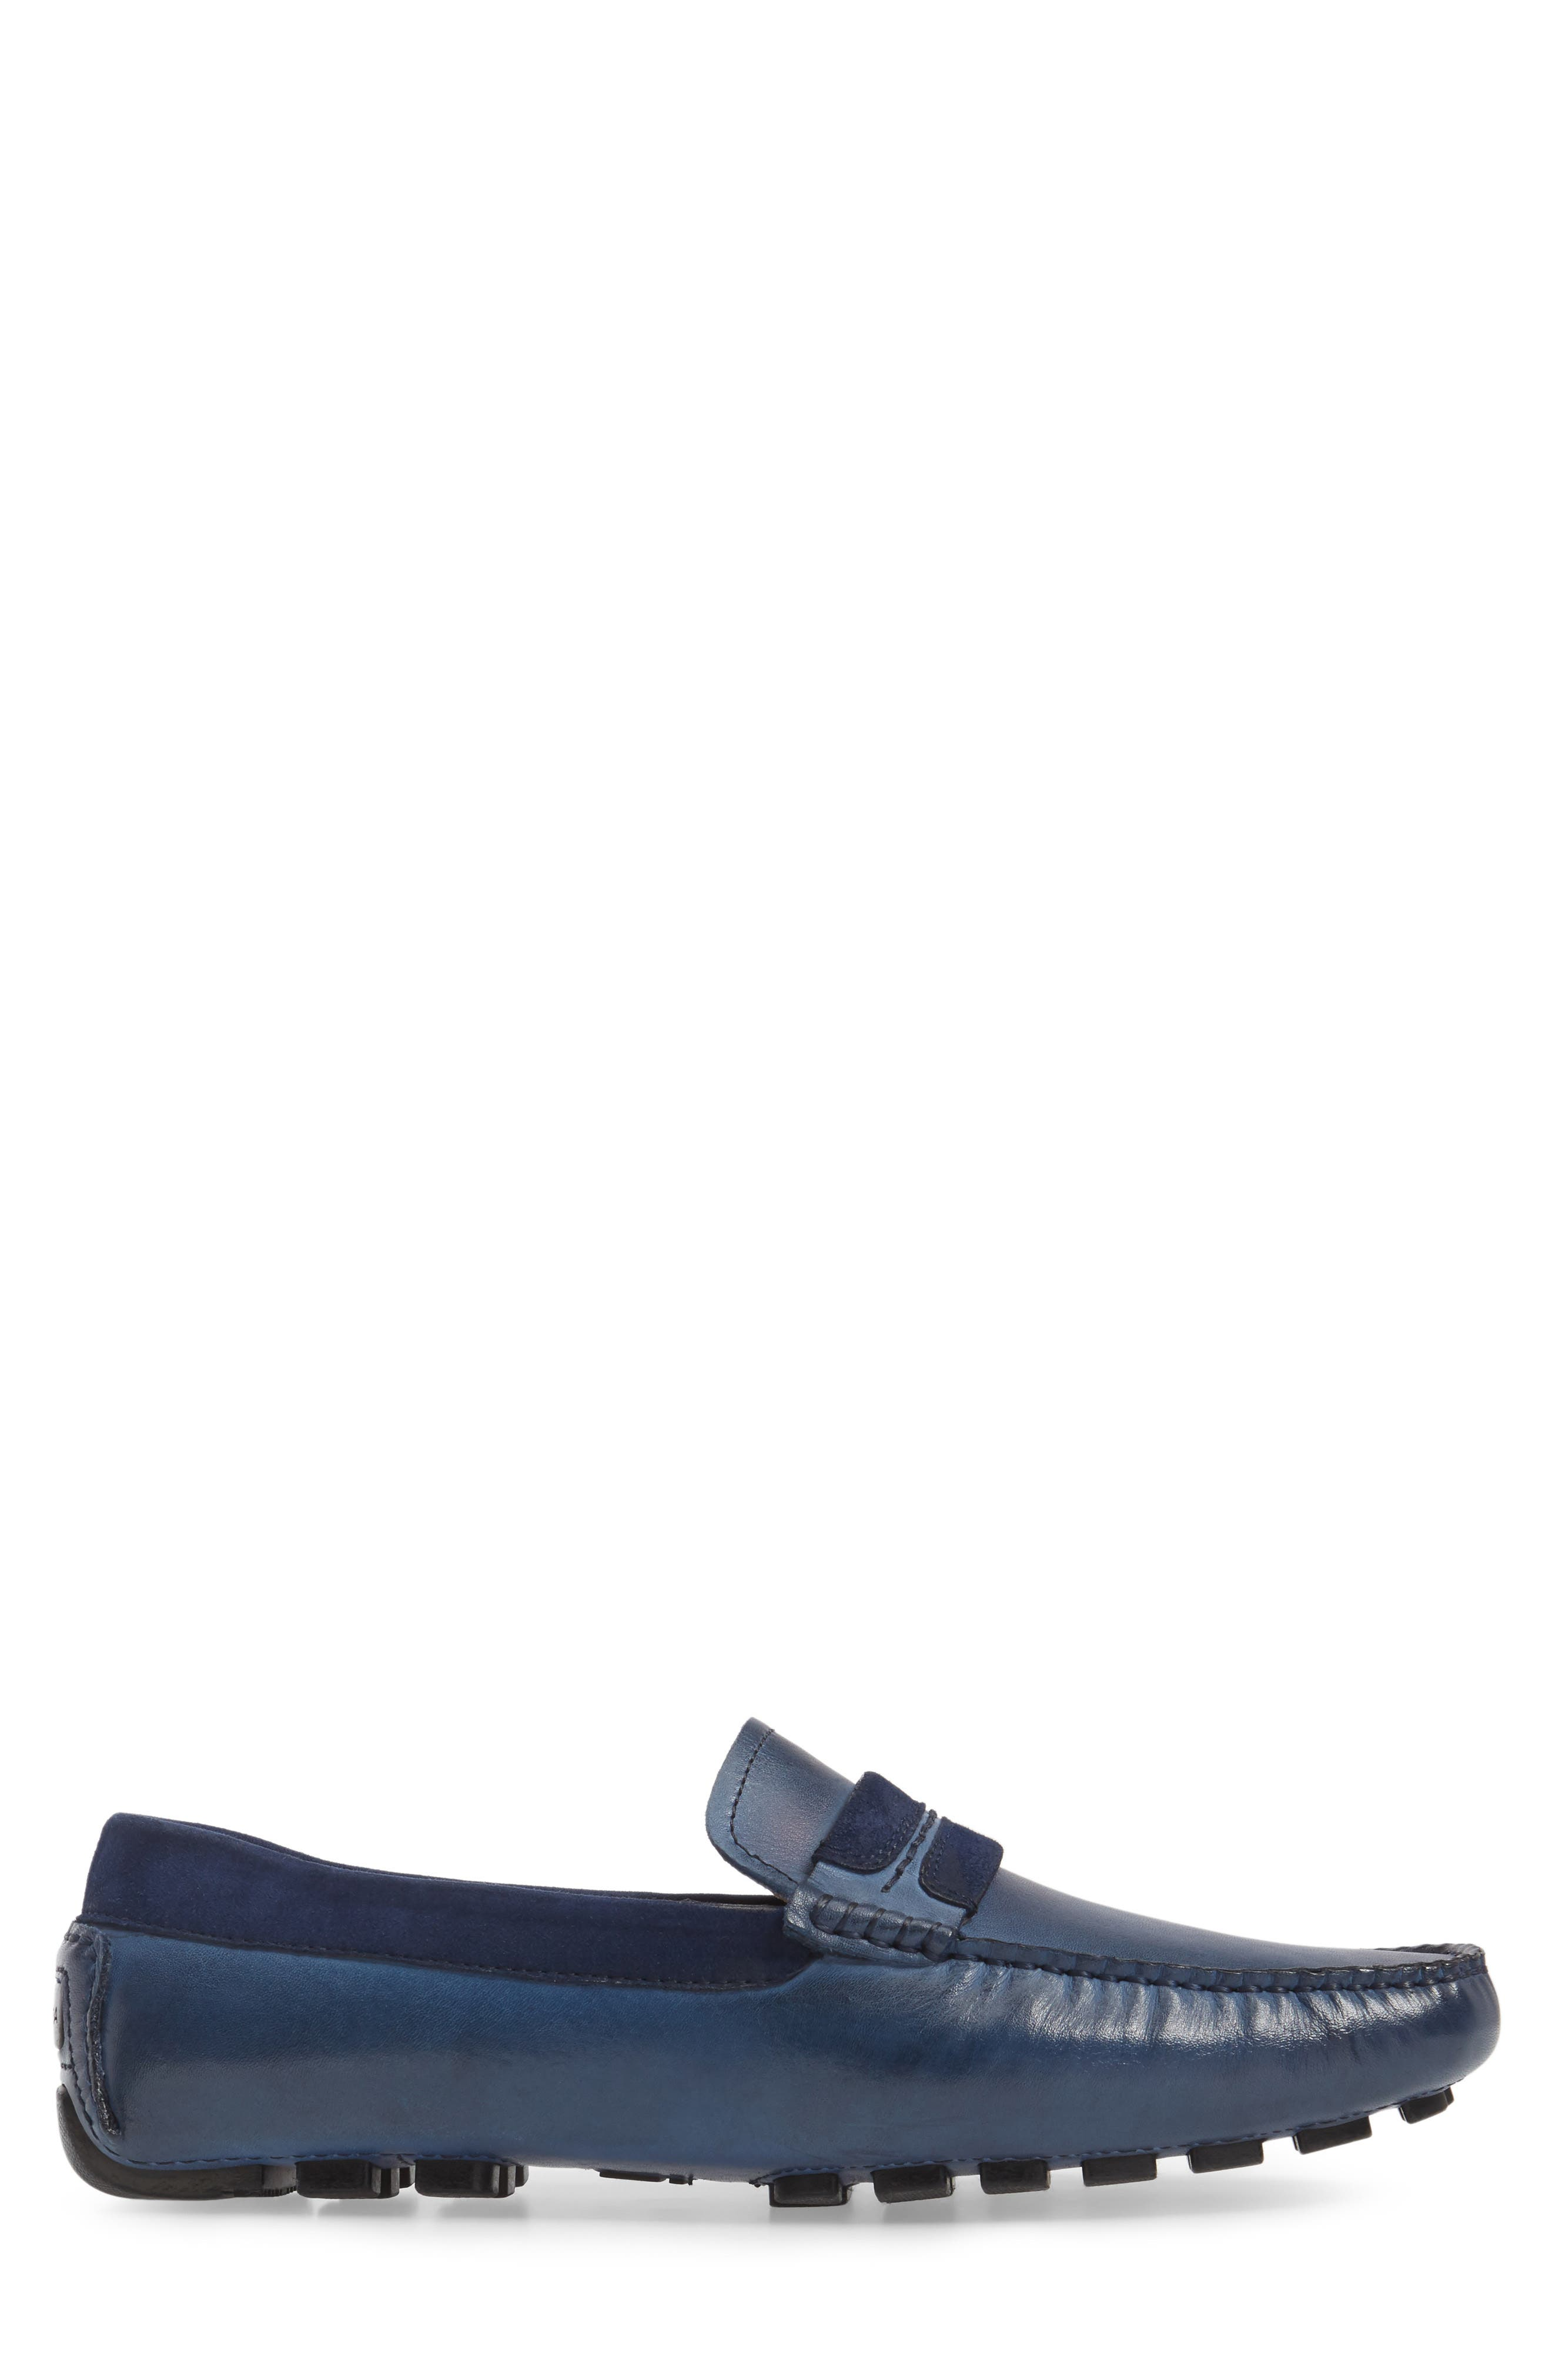 ZANZARA,                             Francesca Driving Shoe,                             Alternate thumbnail 3, color,                             BLUE LEATHER